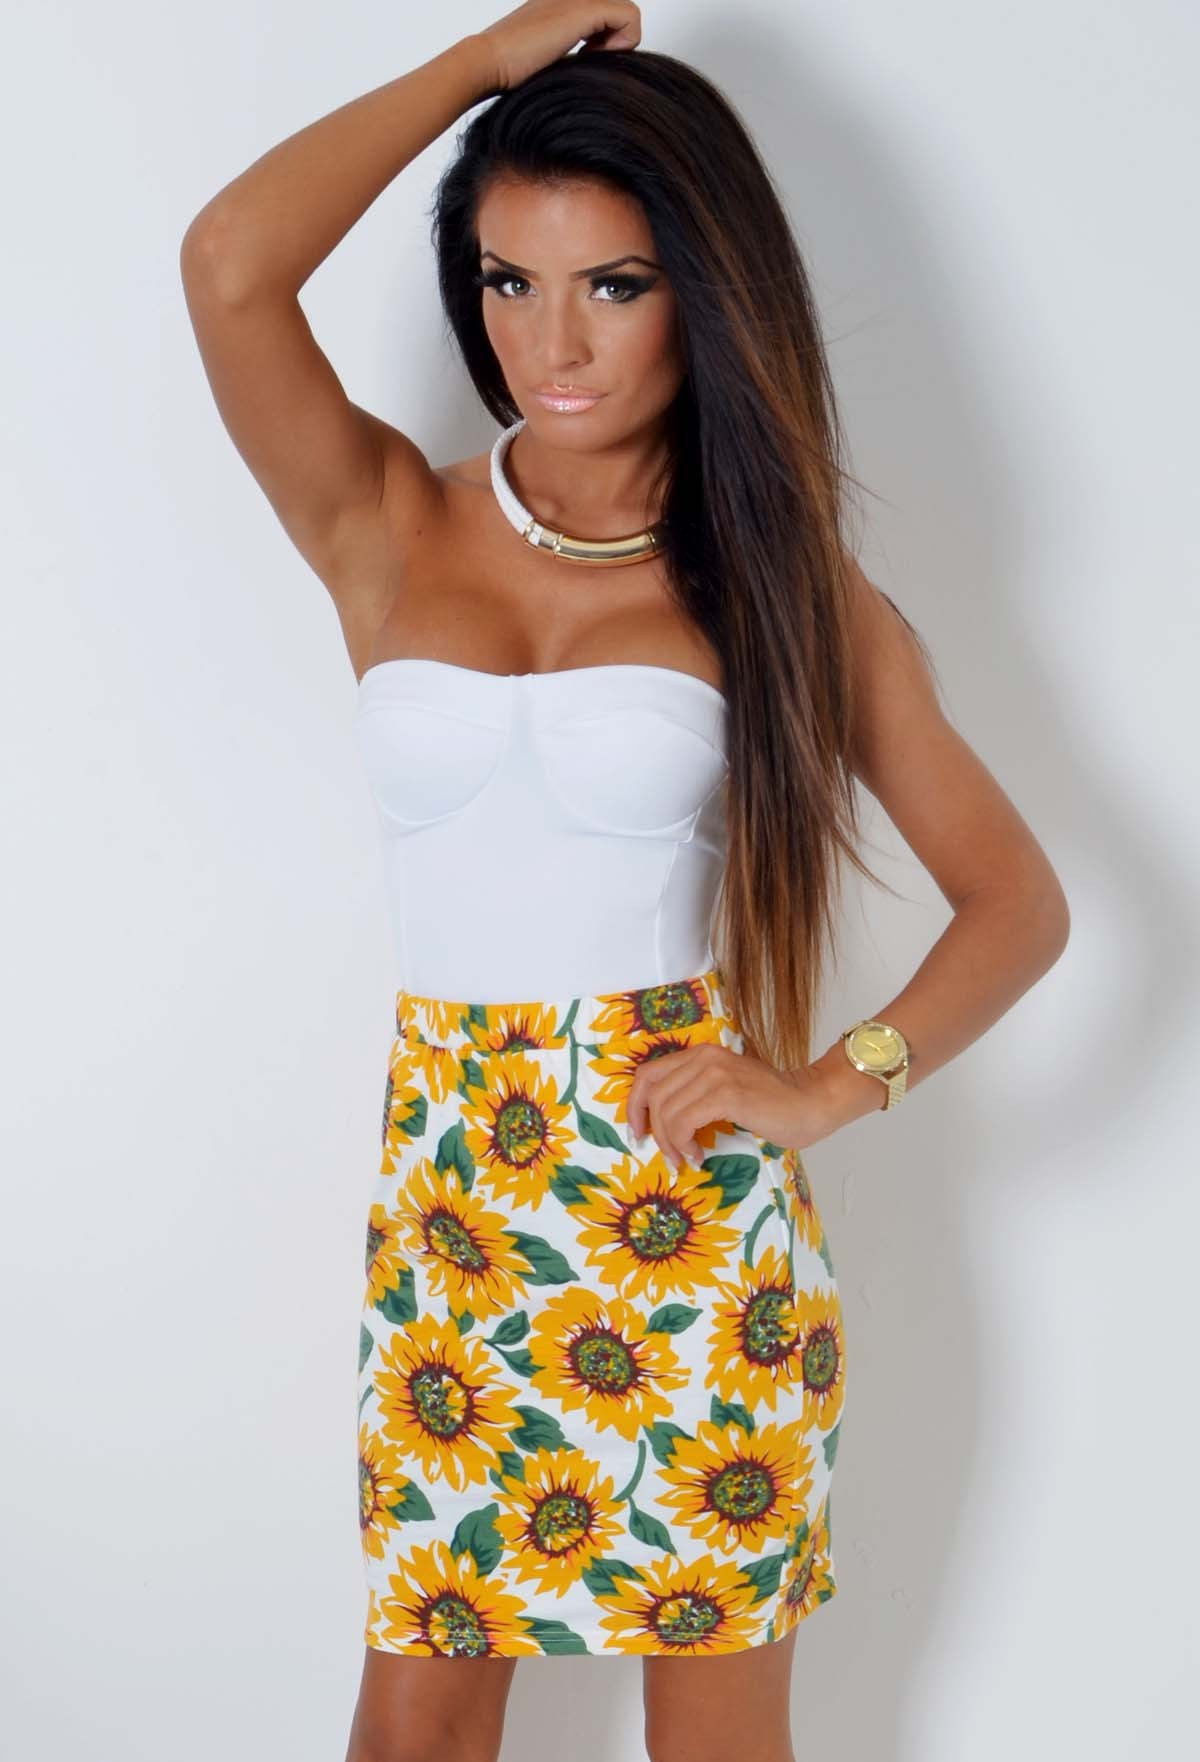 Sunny Sunflower Print Bodycon Midi Dress | Pink Boutique